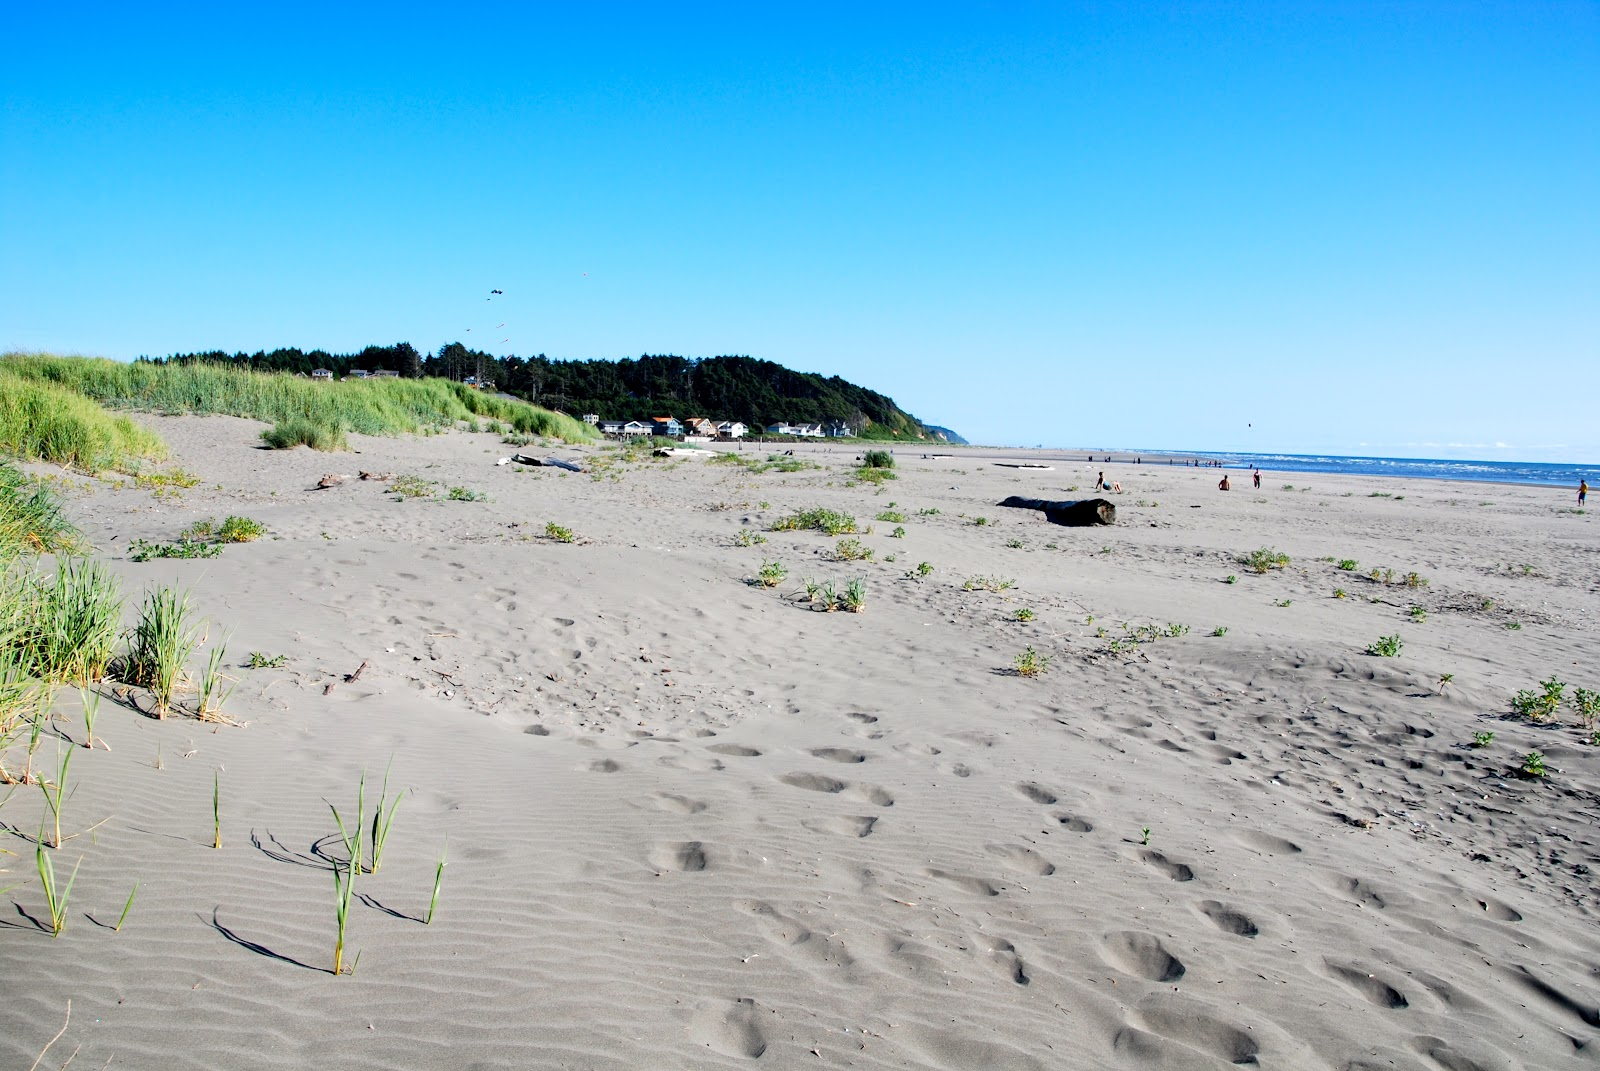 Pacific Beach State Park | Outdoor Project |Pacific Beach State Park